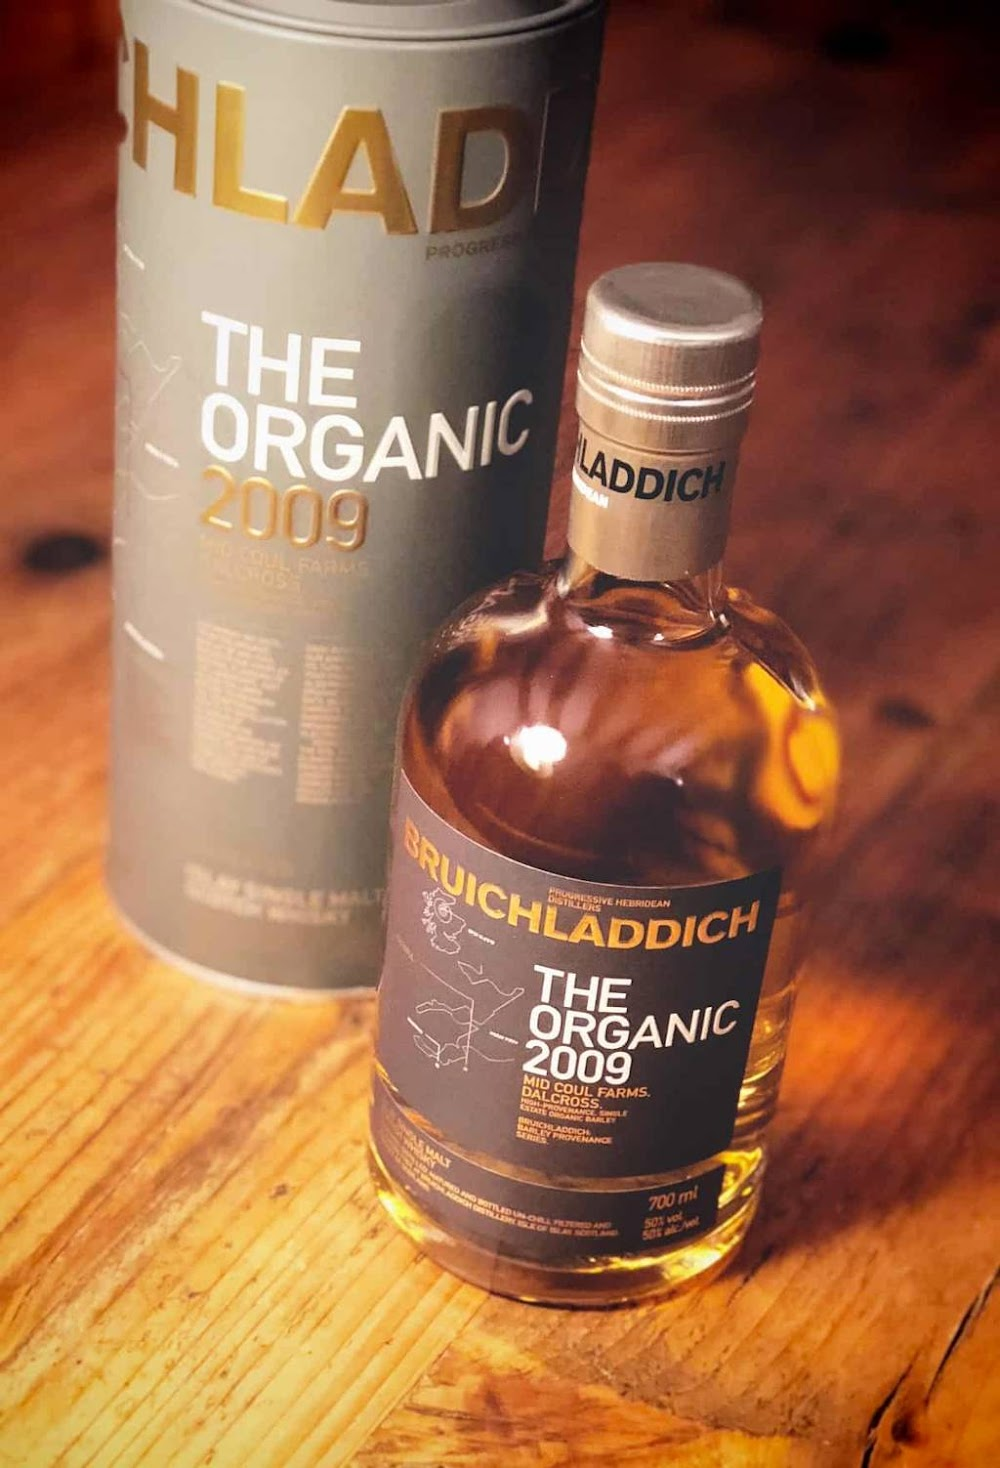 flavored_alcohol_brands_india_bruichladdich_image